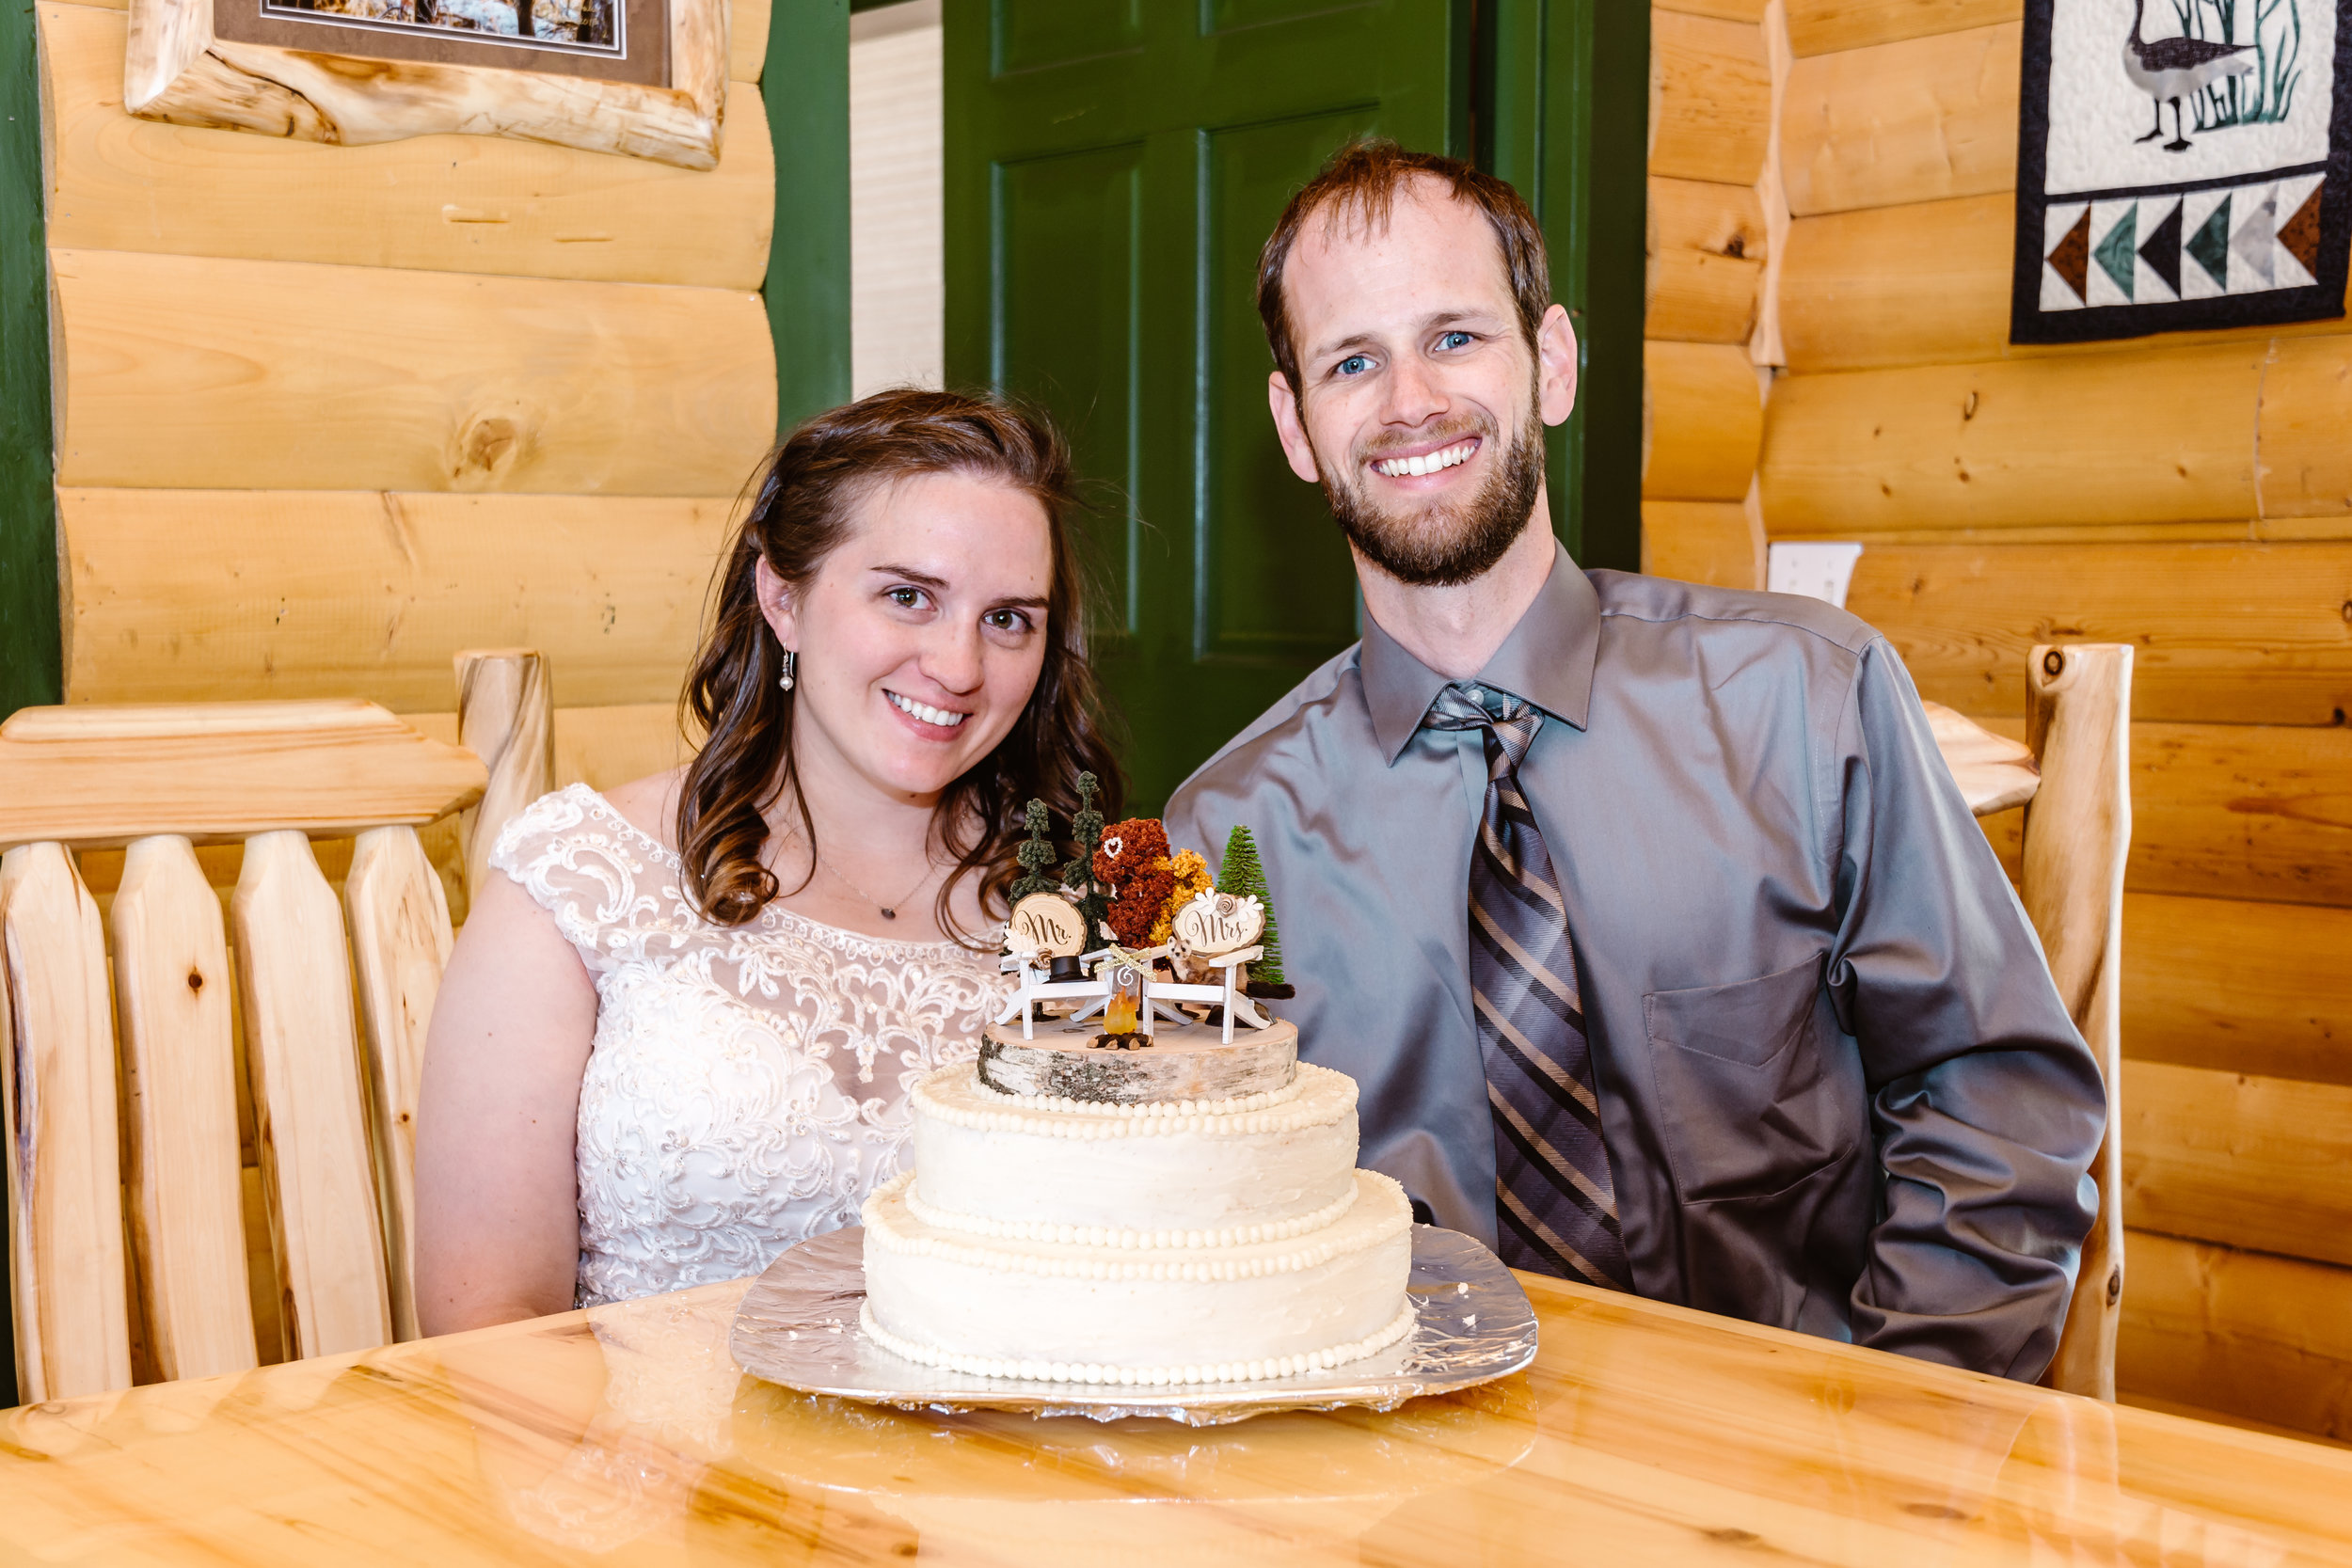 RockyMountainWedding-Cake.jpg